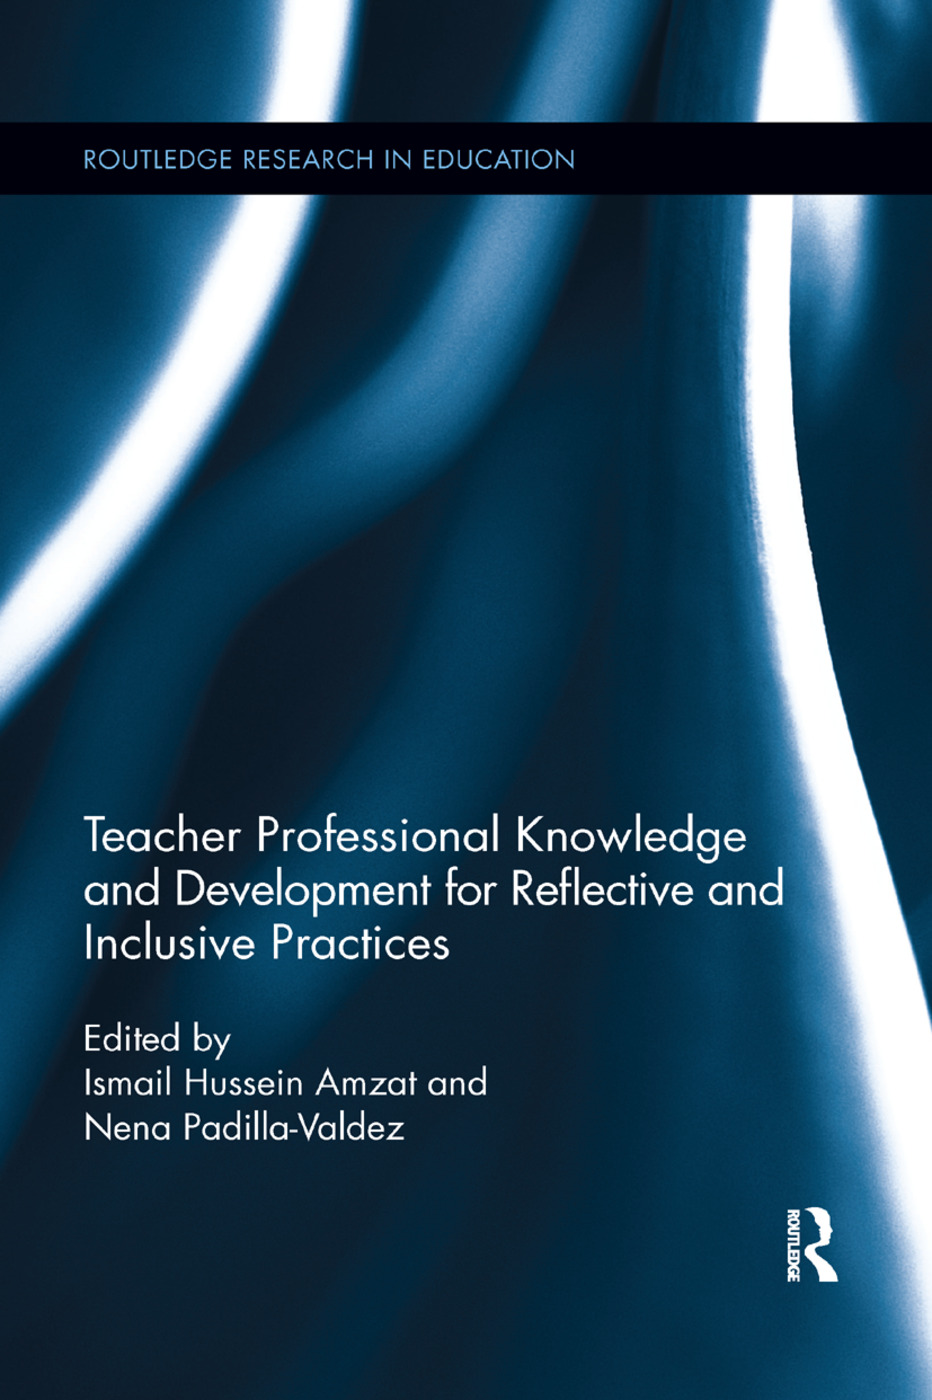 Teacher Professional Knowledge and Development for Reflective and Inclusive Practices